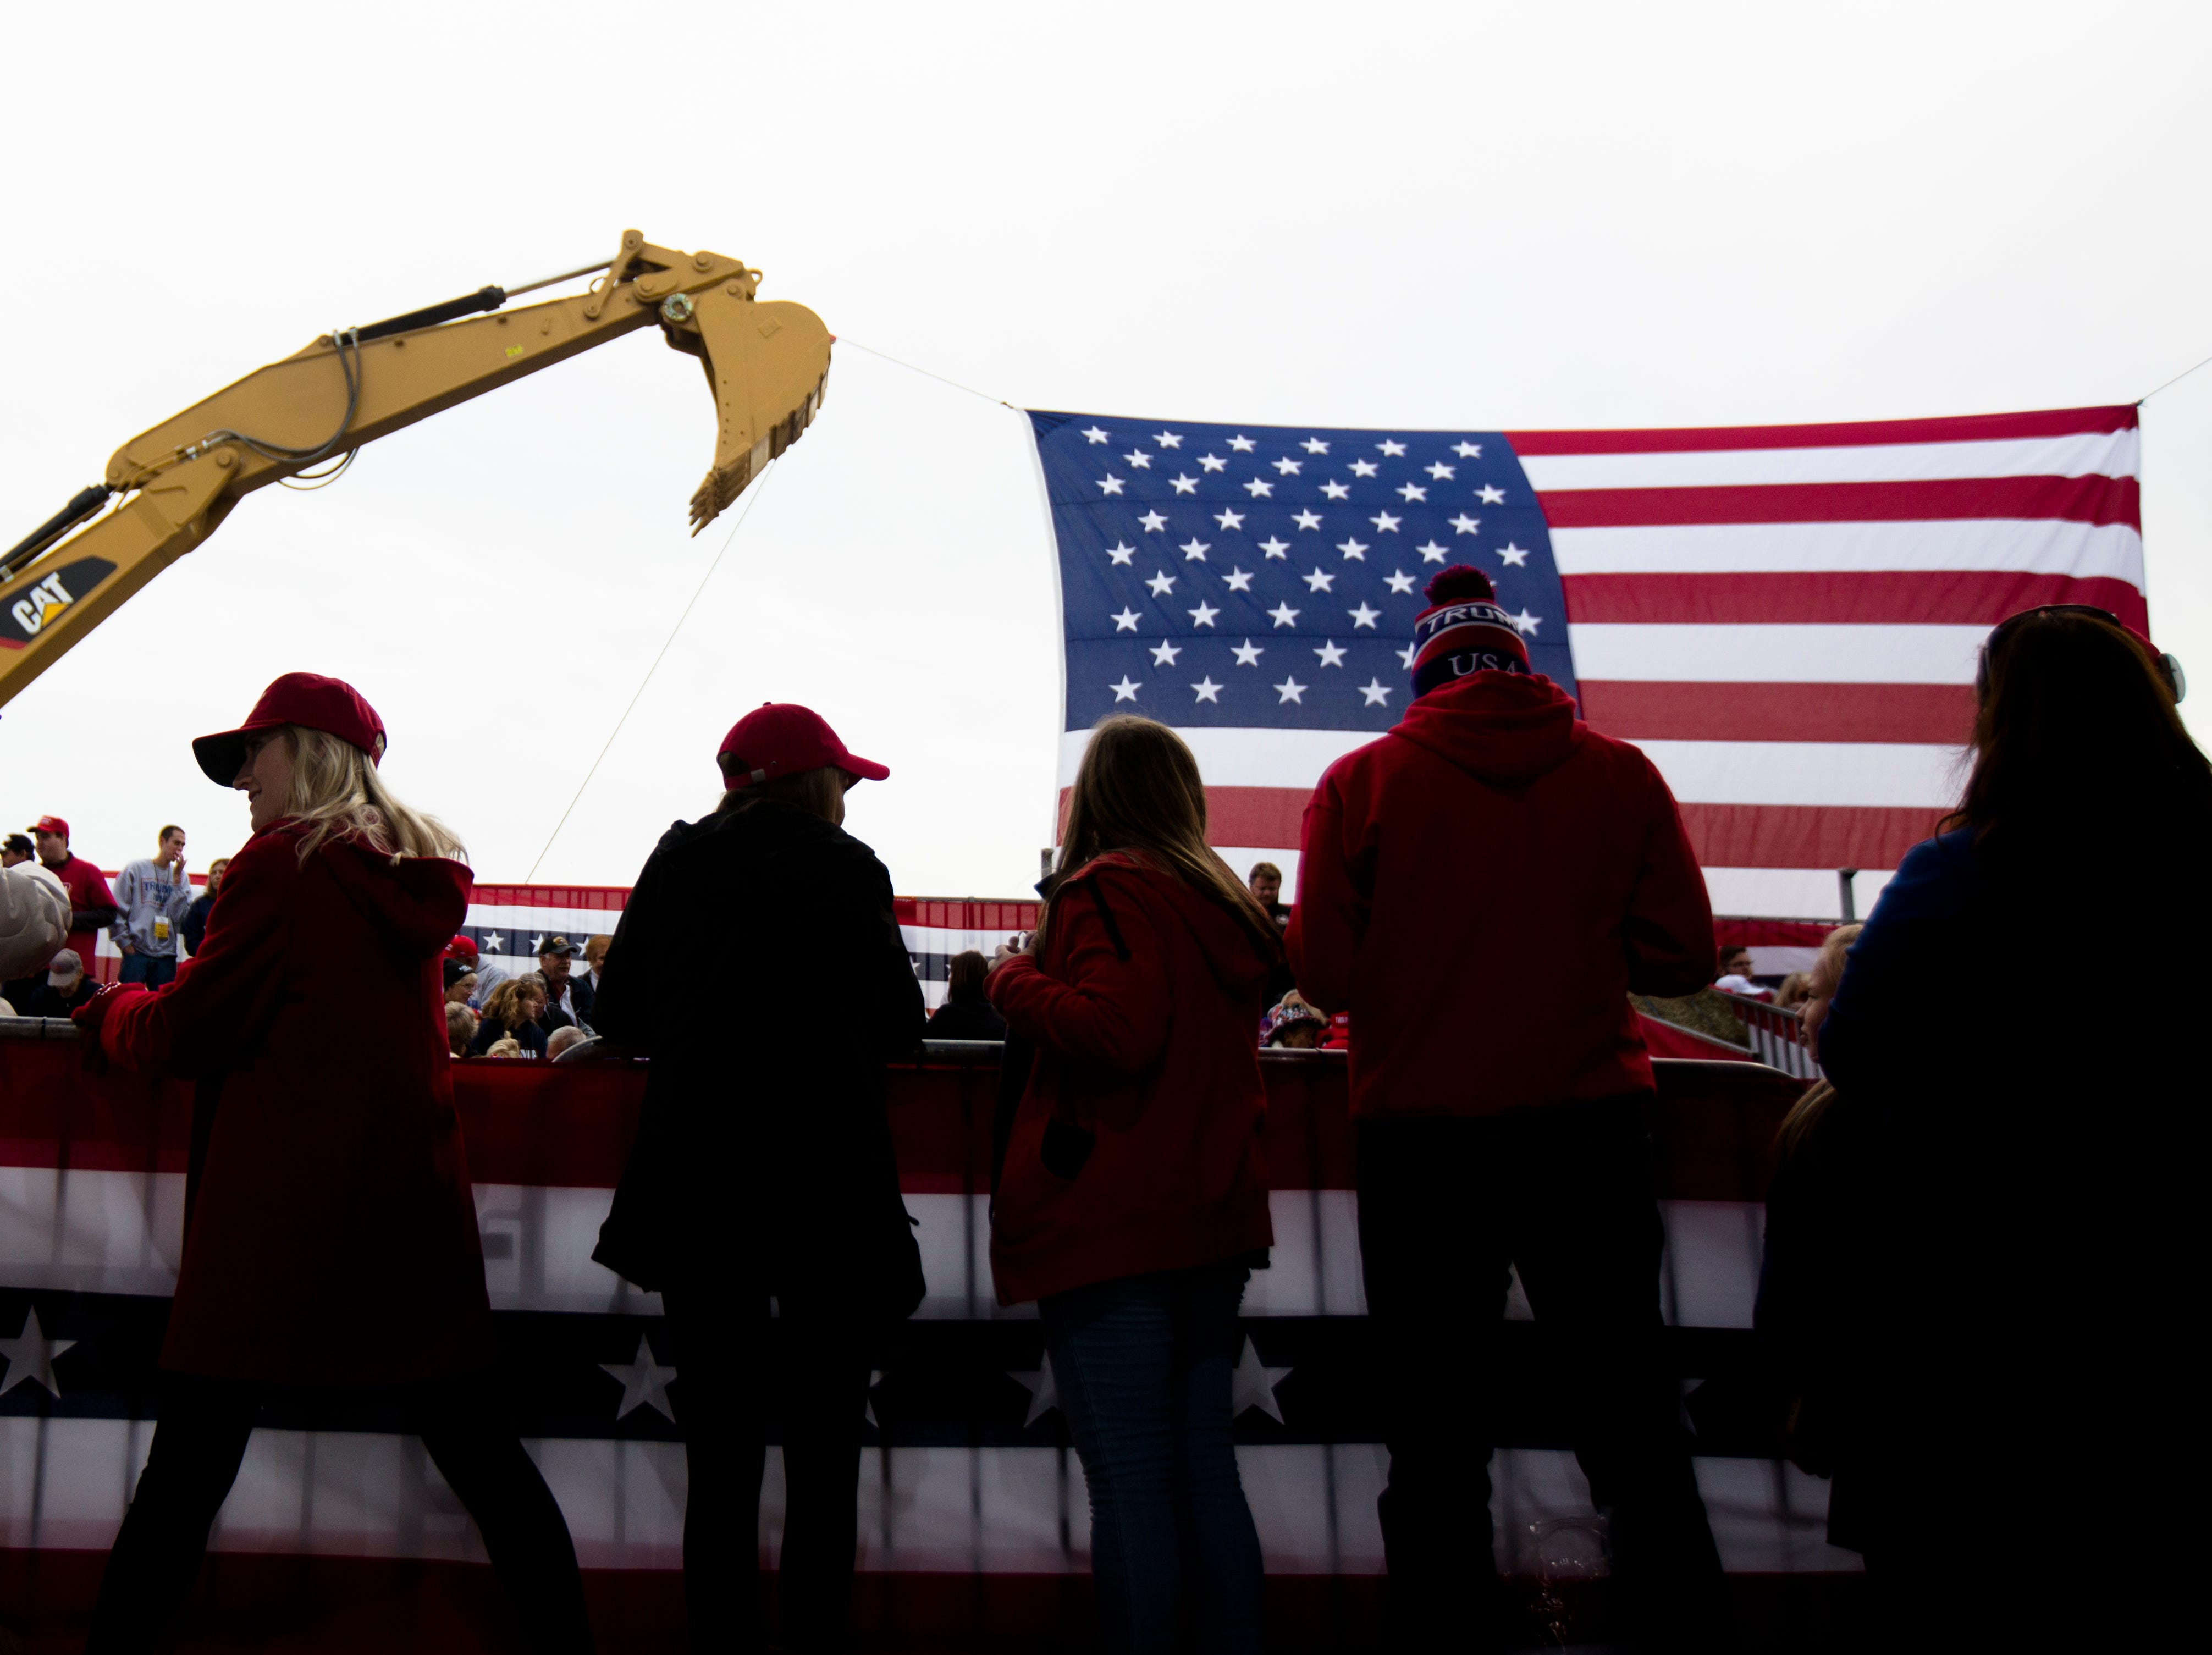 People wait for the President at President Donald J. Trump's Make America Great Again Rally in Lebanon, Ohio, on Friday, Oct. 12, 2018.